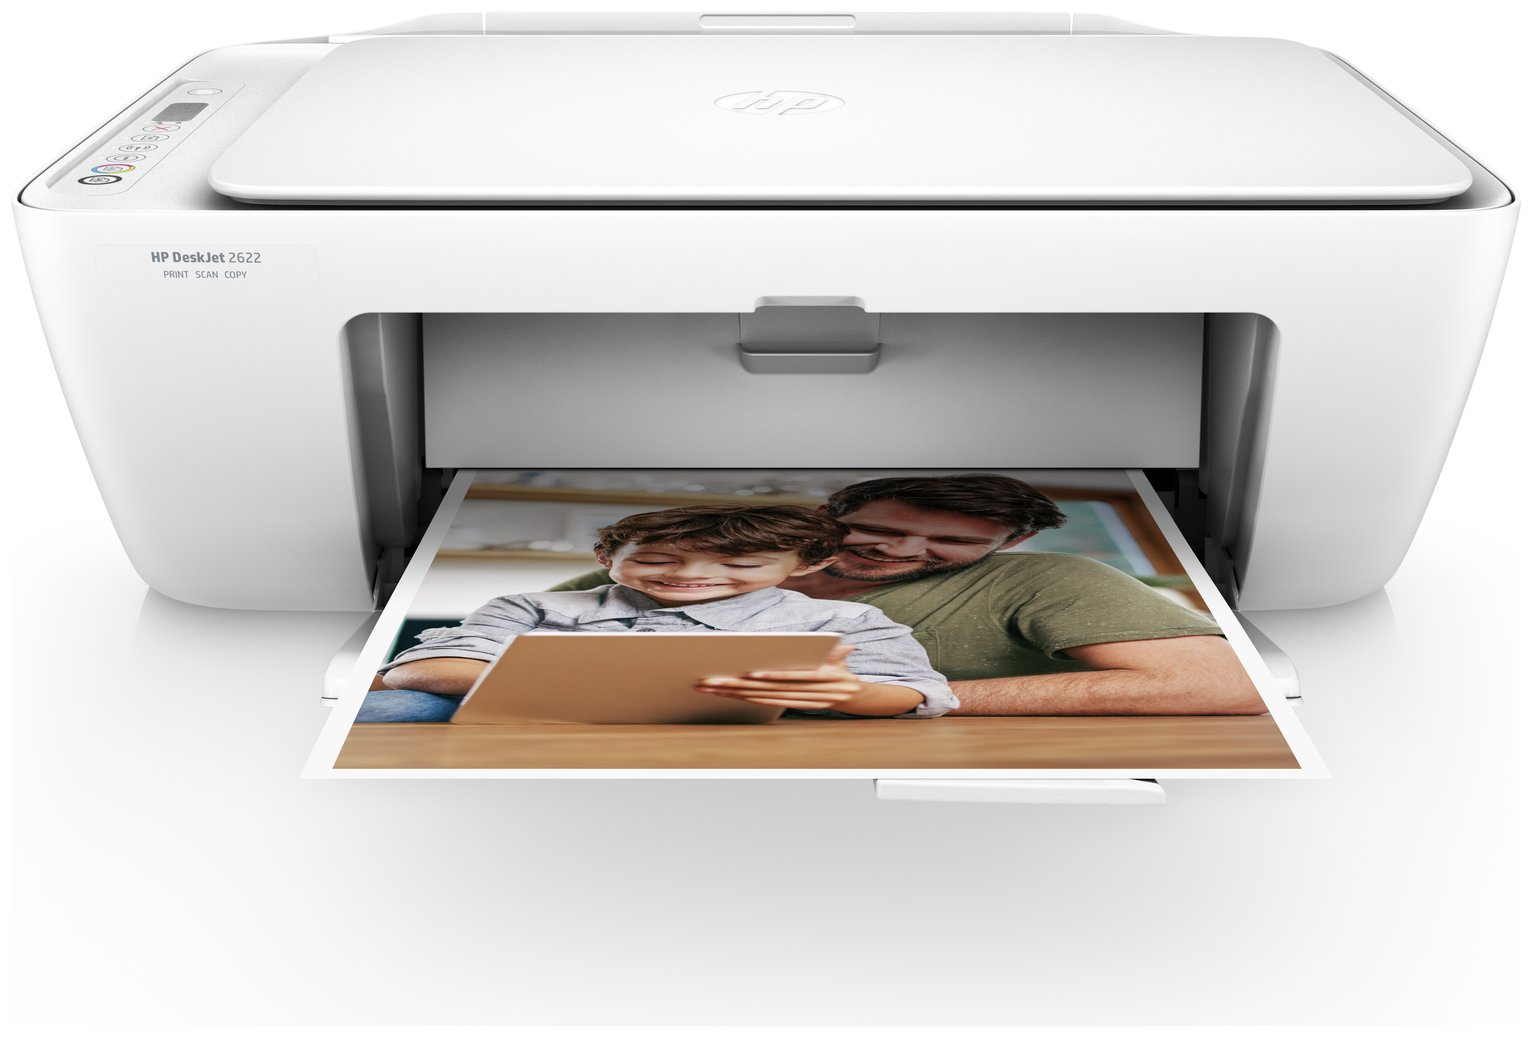 HP Deskjet 2622 Wireless Printer & 2 Months Instant Ink